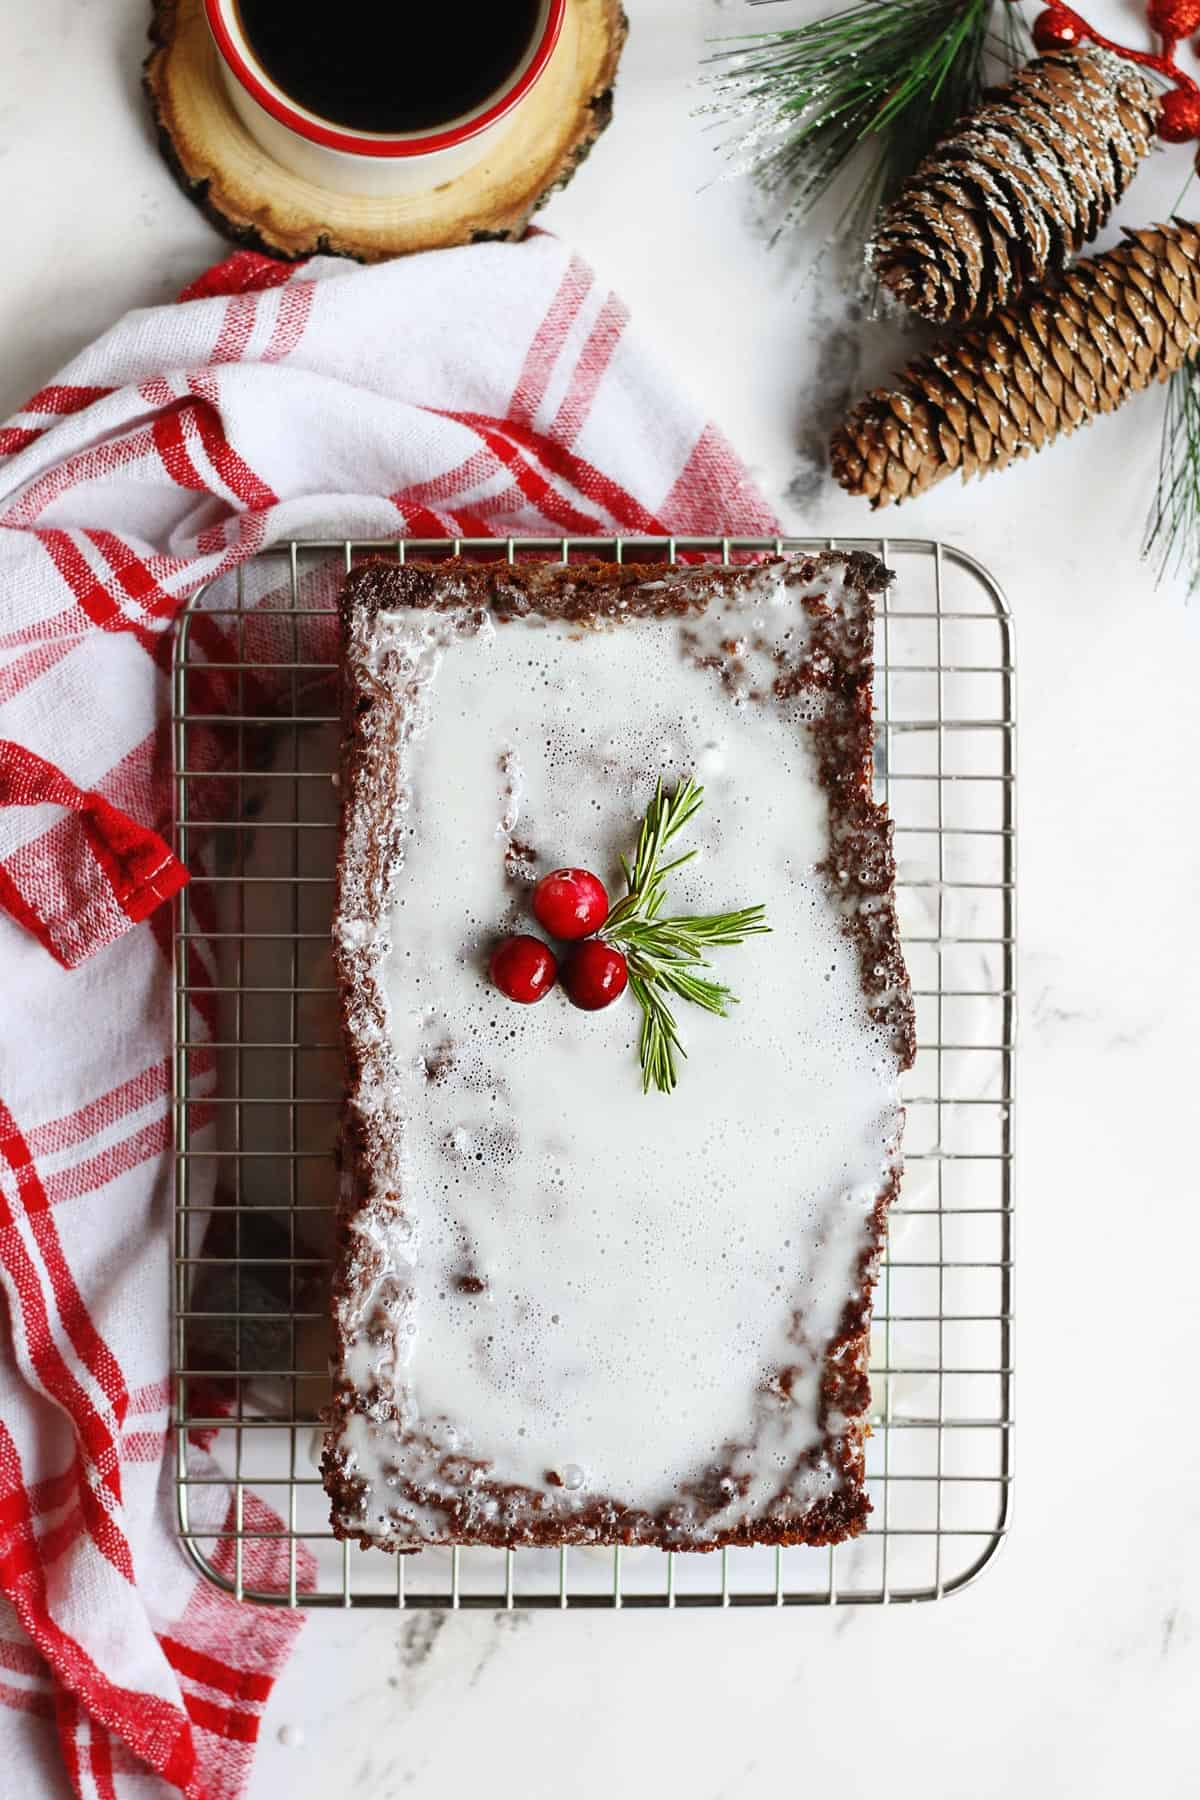 Gingerbread with fresh ginger